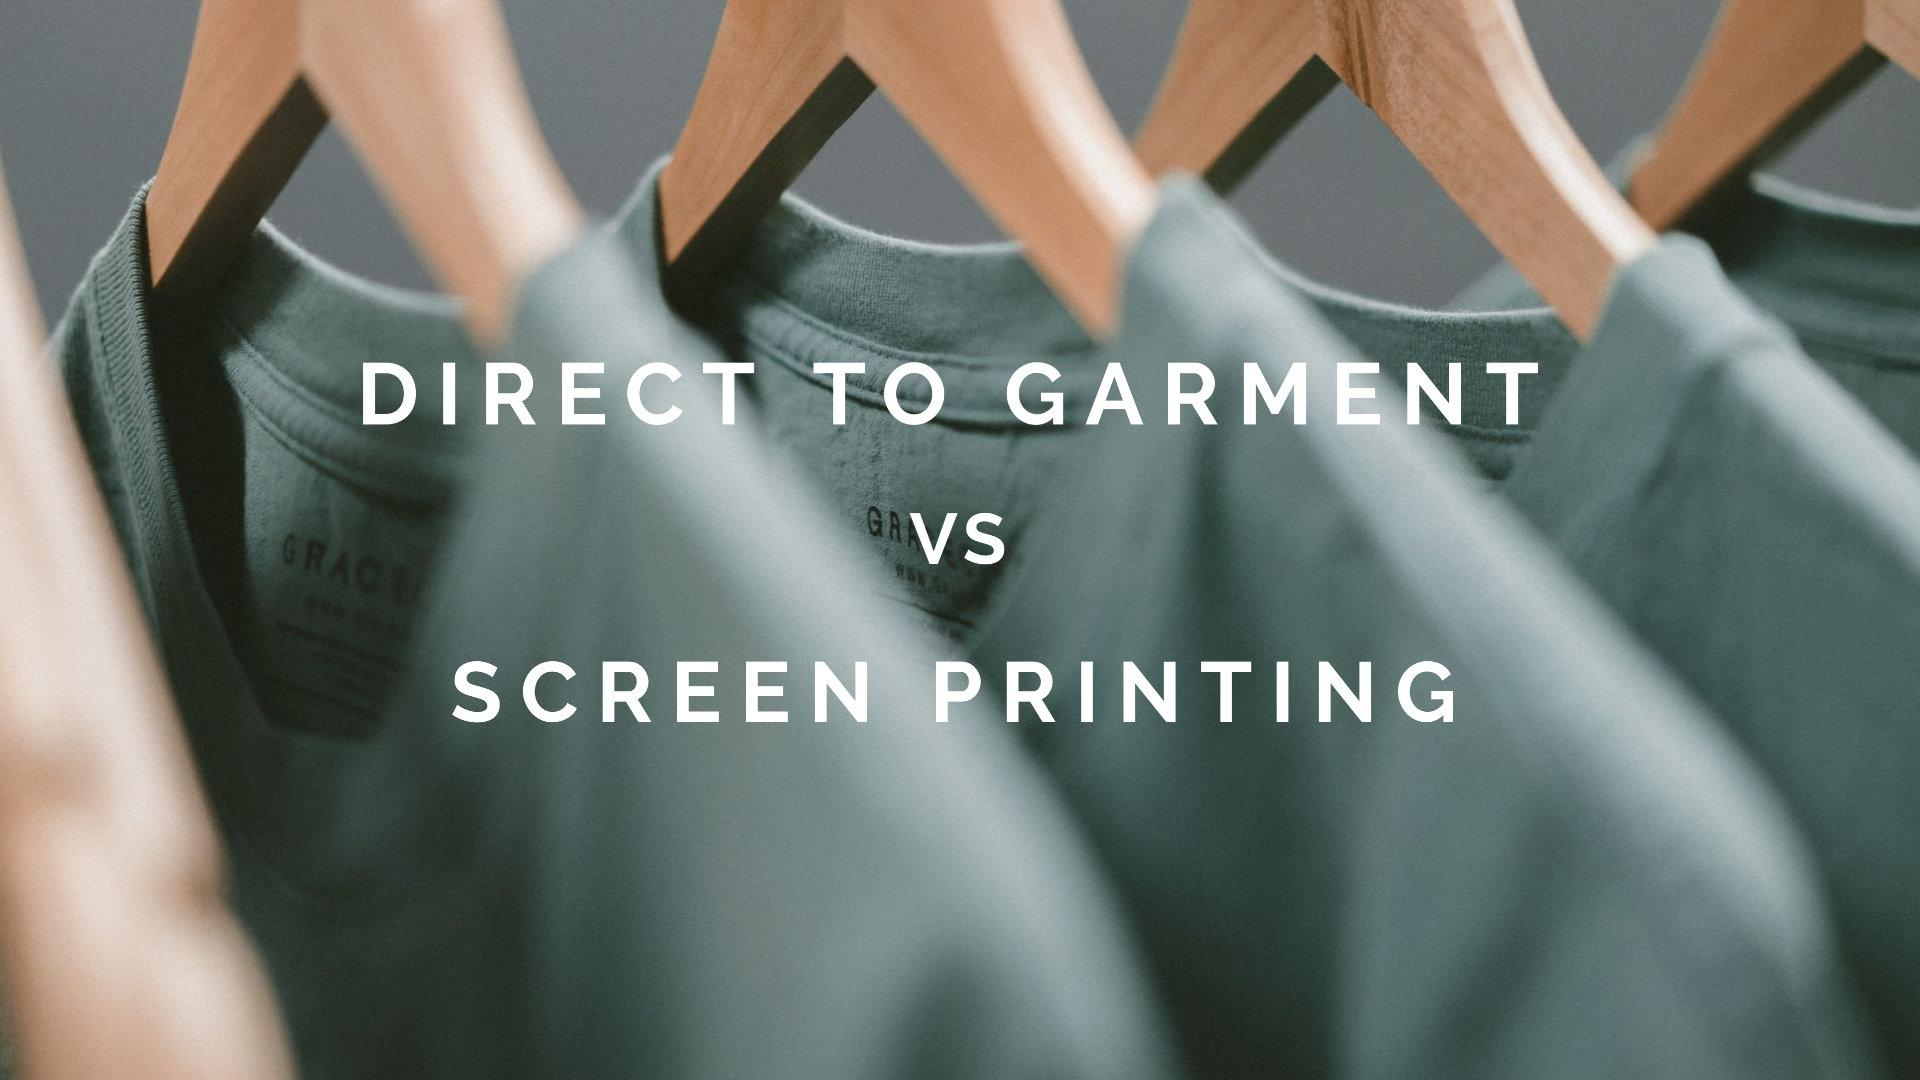 DTG vs Screen Printing: Which Should You Choose?